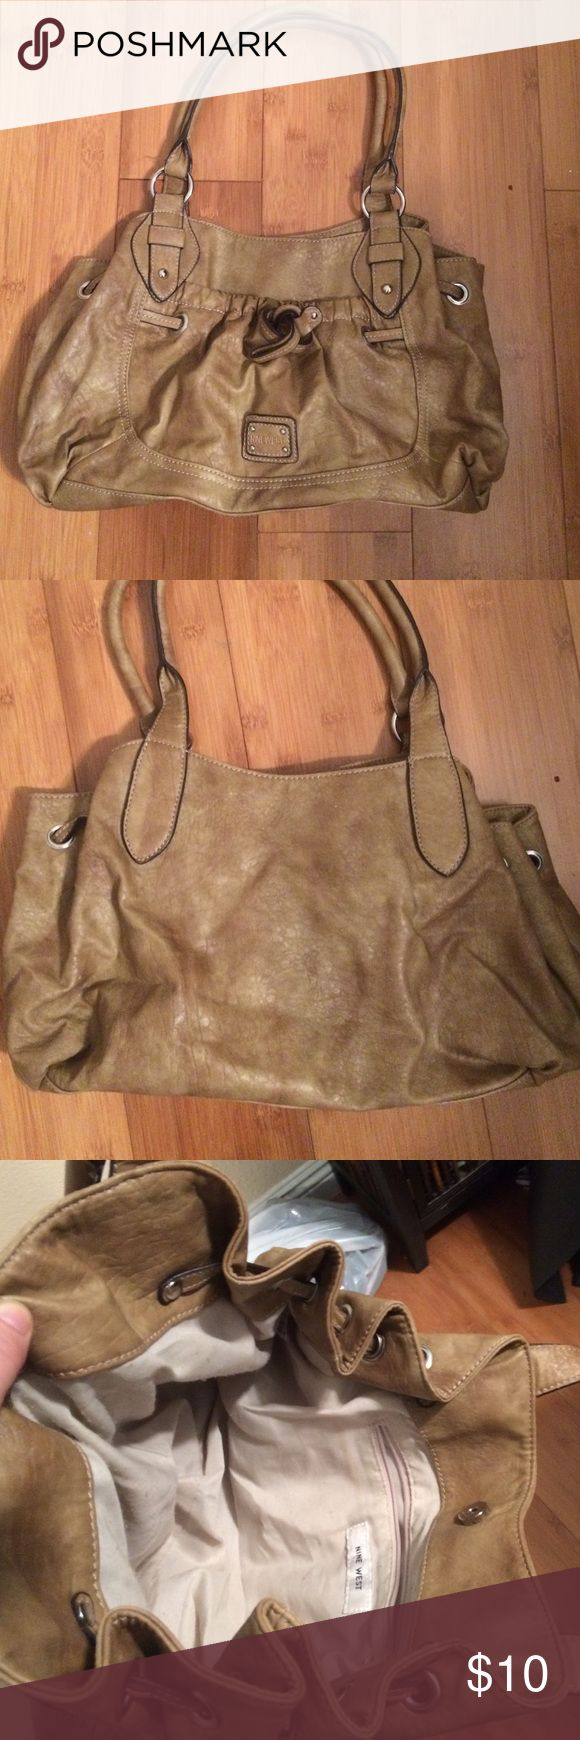 Nine West Purse Used once, no stains Nine West Bags Shoulder Bags